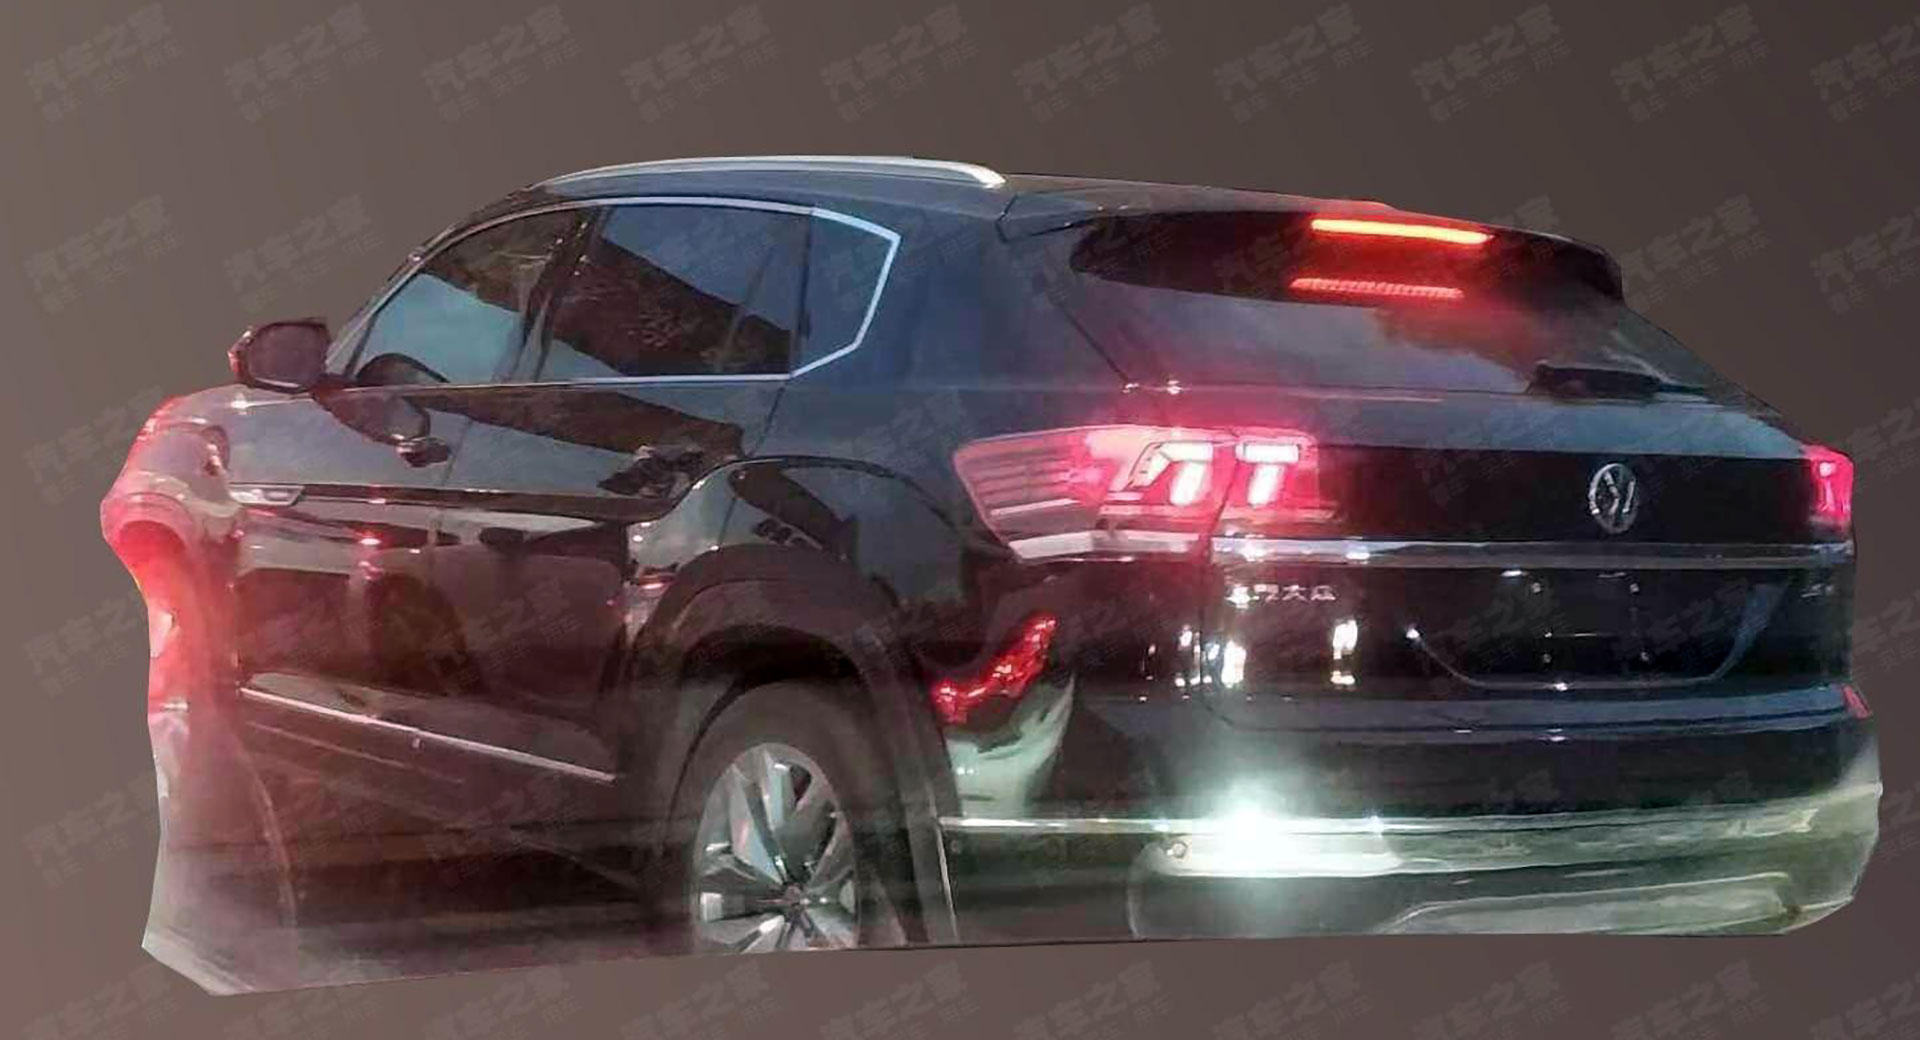 2020 Vw Atlas Cross Sport Production Model Spotted